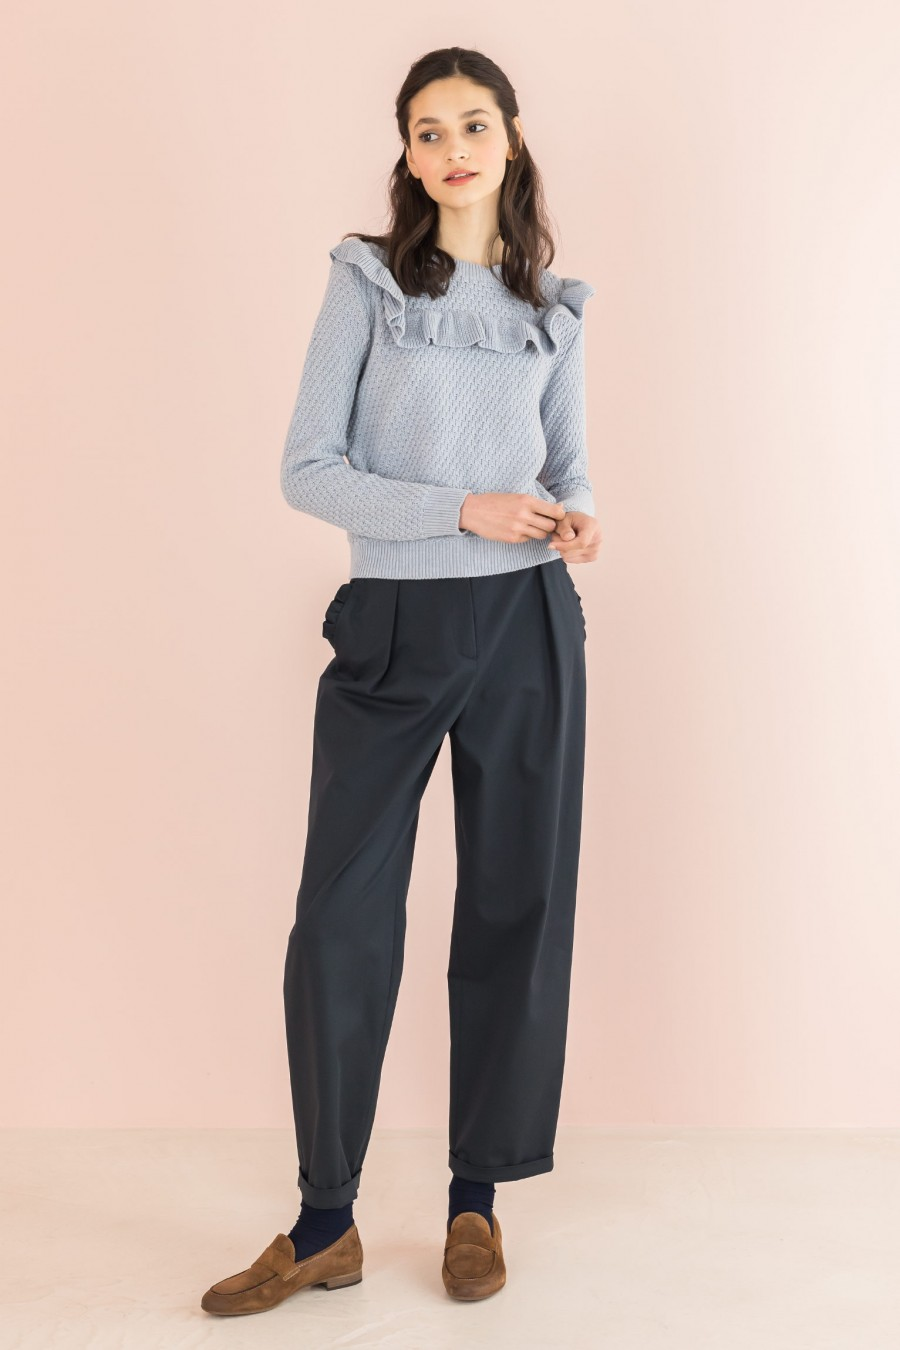 blue egg-shaped trousers with ruffles on the pockets